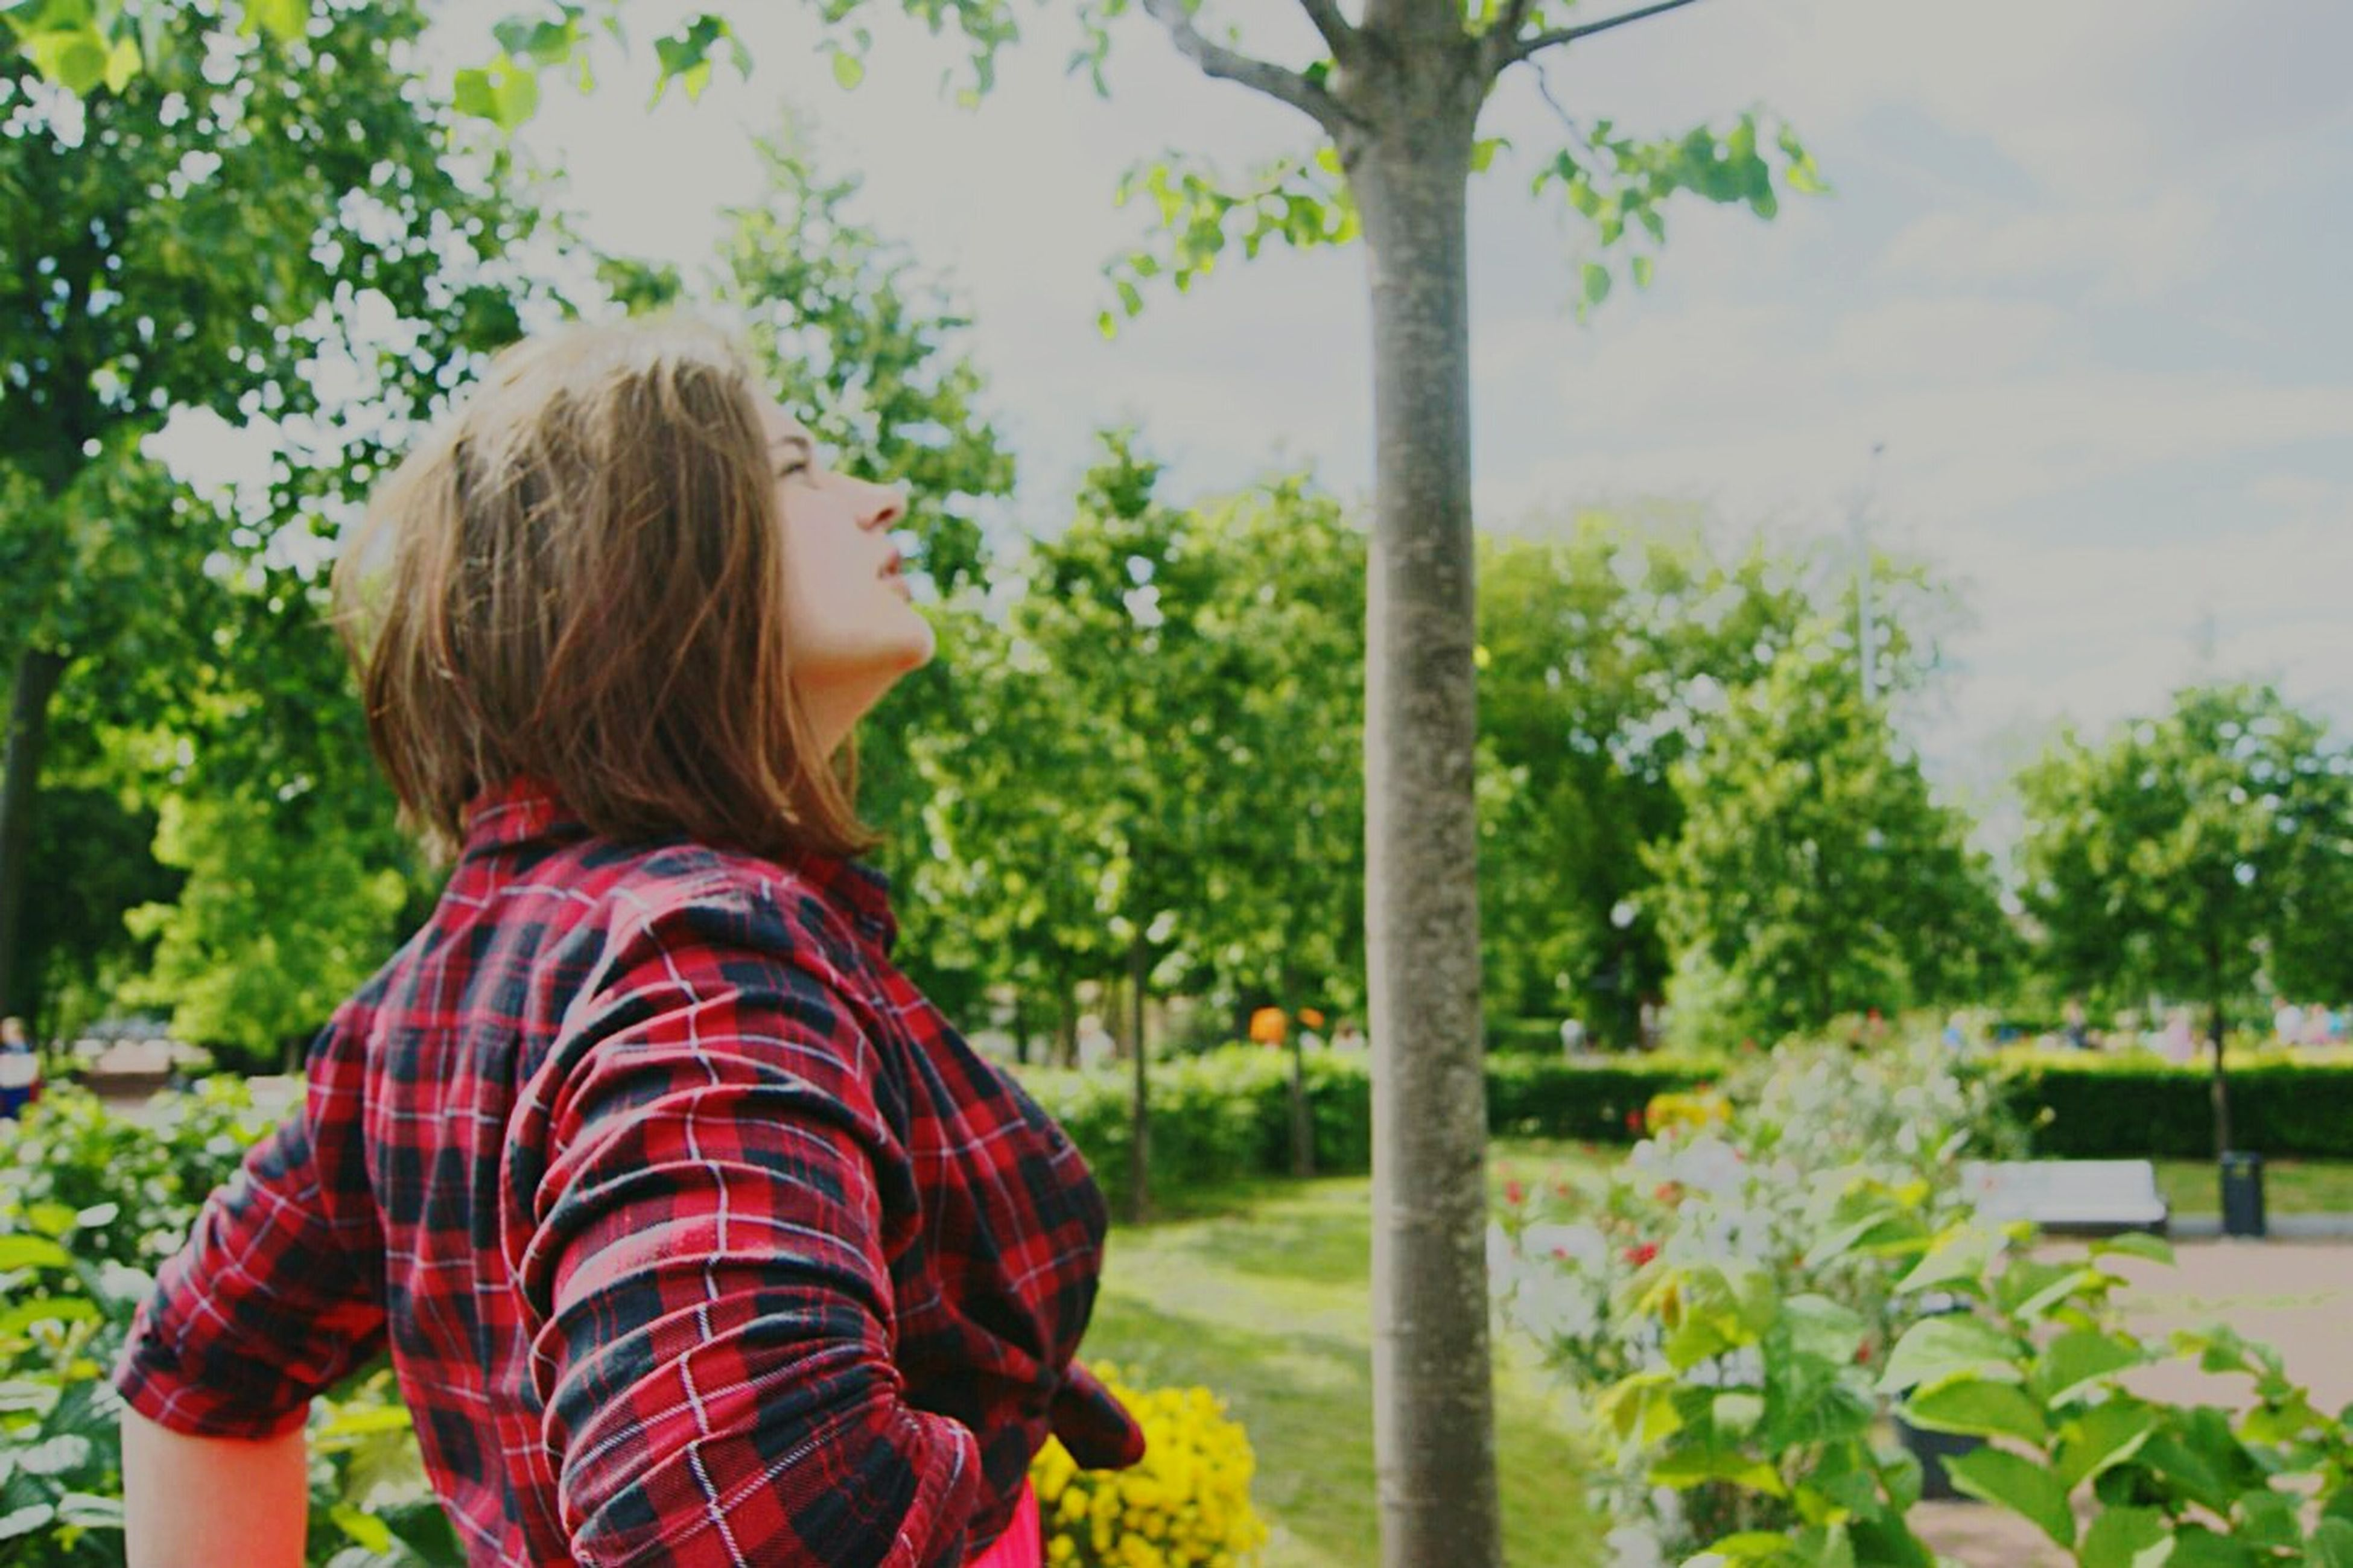 lifestyles, leisure activity, tree, long hair, rear view, casual clothing, person, standing, waist up, focus on foreground, blond hair, park - man made space, girls, young women, three quarter length, nature, brown hair, plant